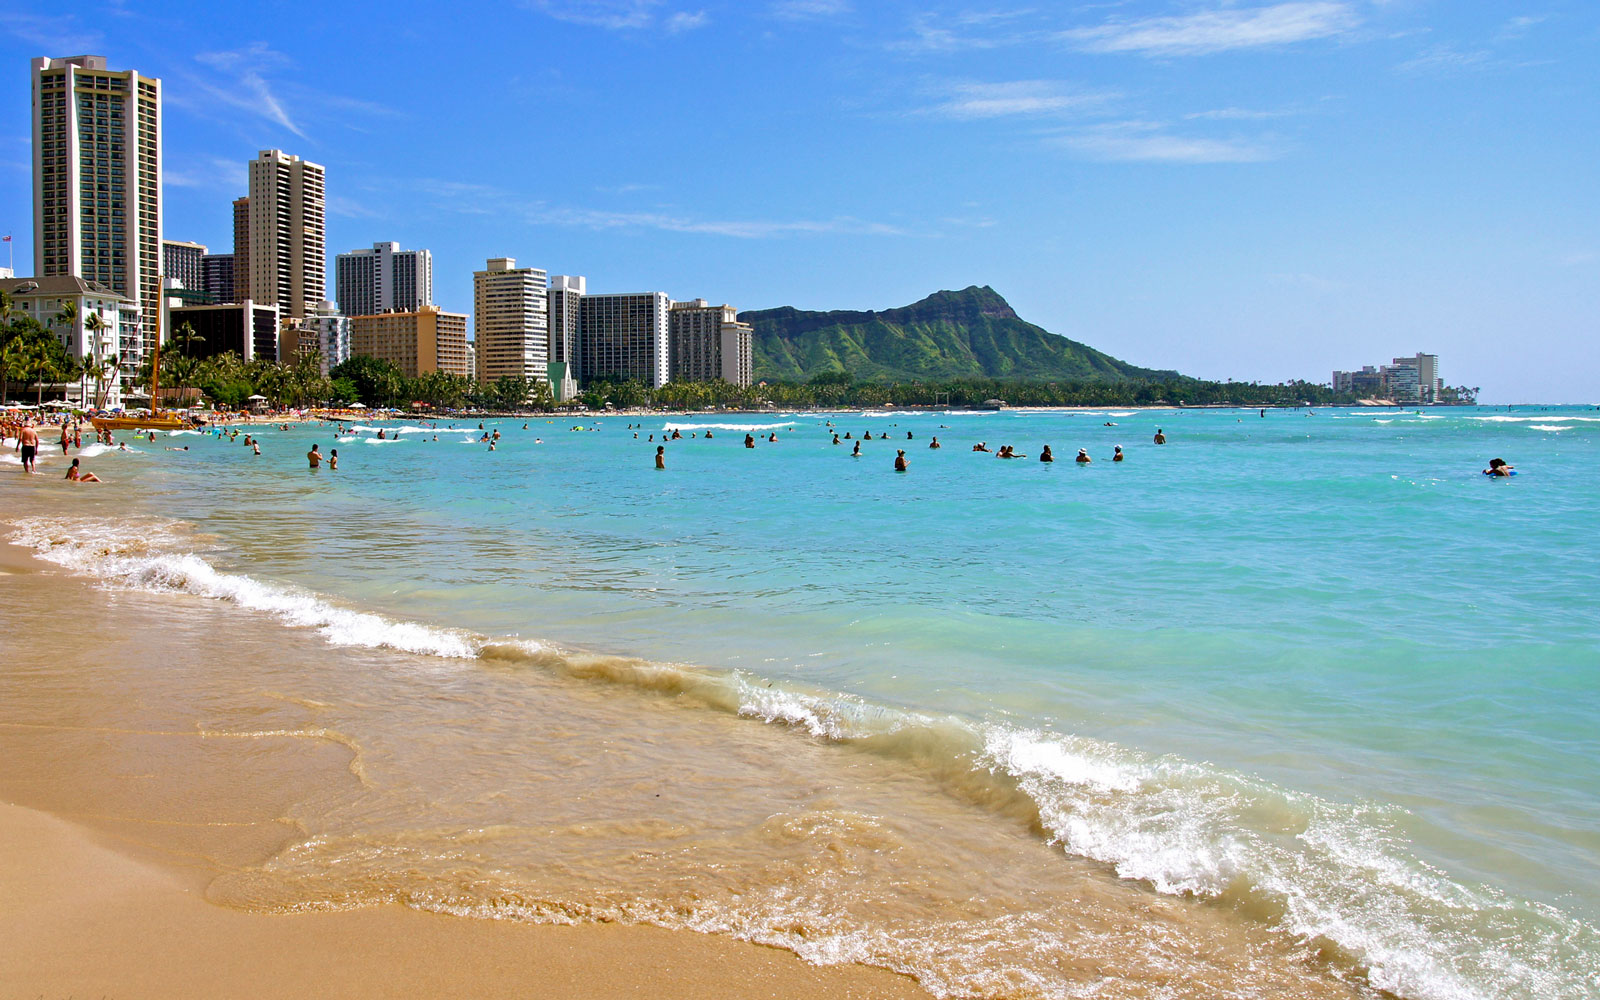 Waikiki Beach Has Been Eroding for Years — but a $13 Million Allocation Will Ensure the Beach Remains